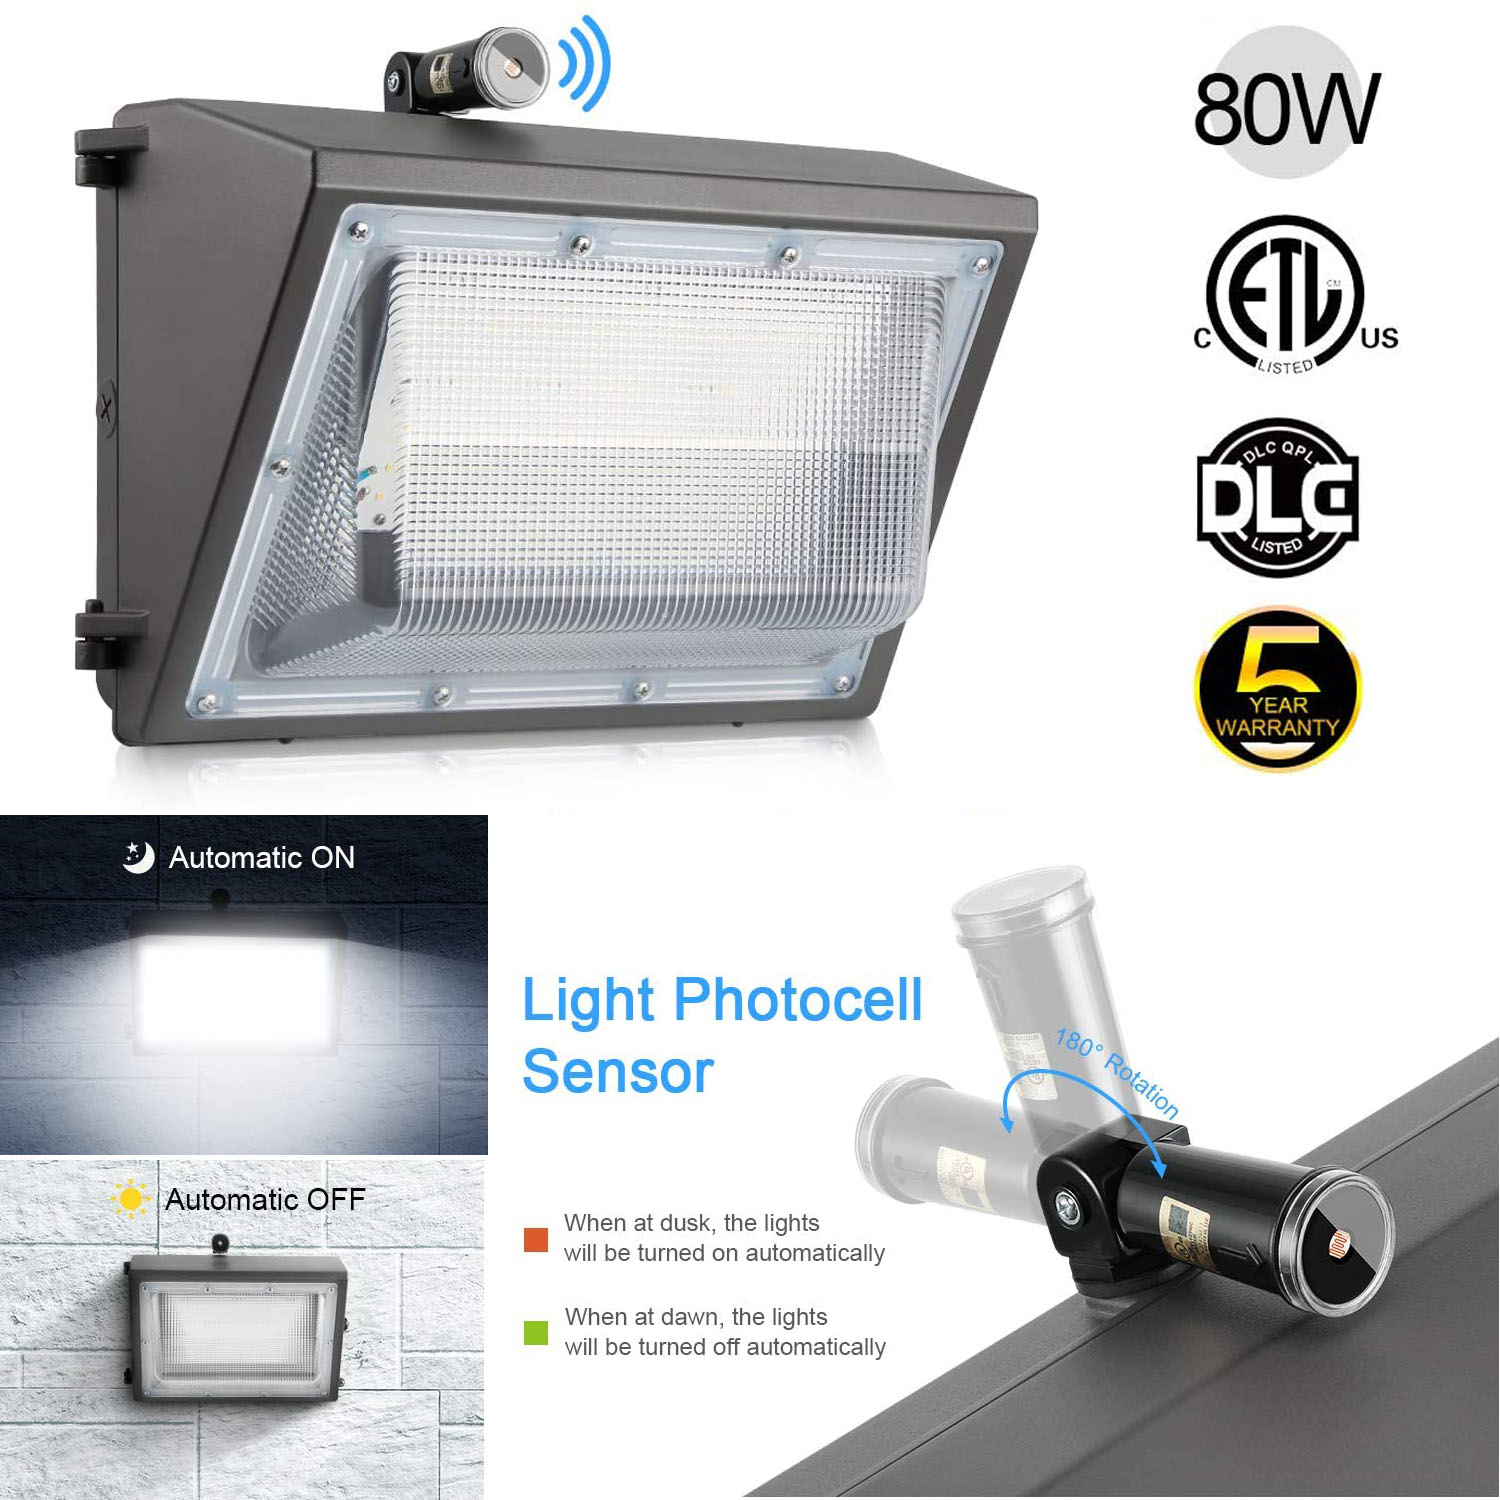 details about 80w wall pack led wall lights 120v 277v 5000k commercial outdoor light fixture